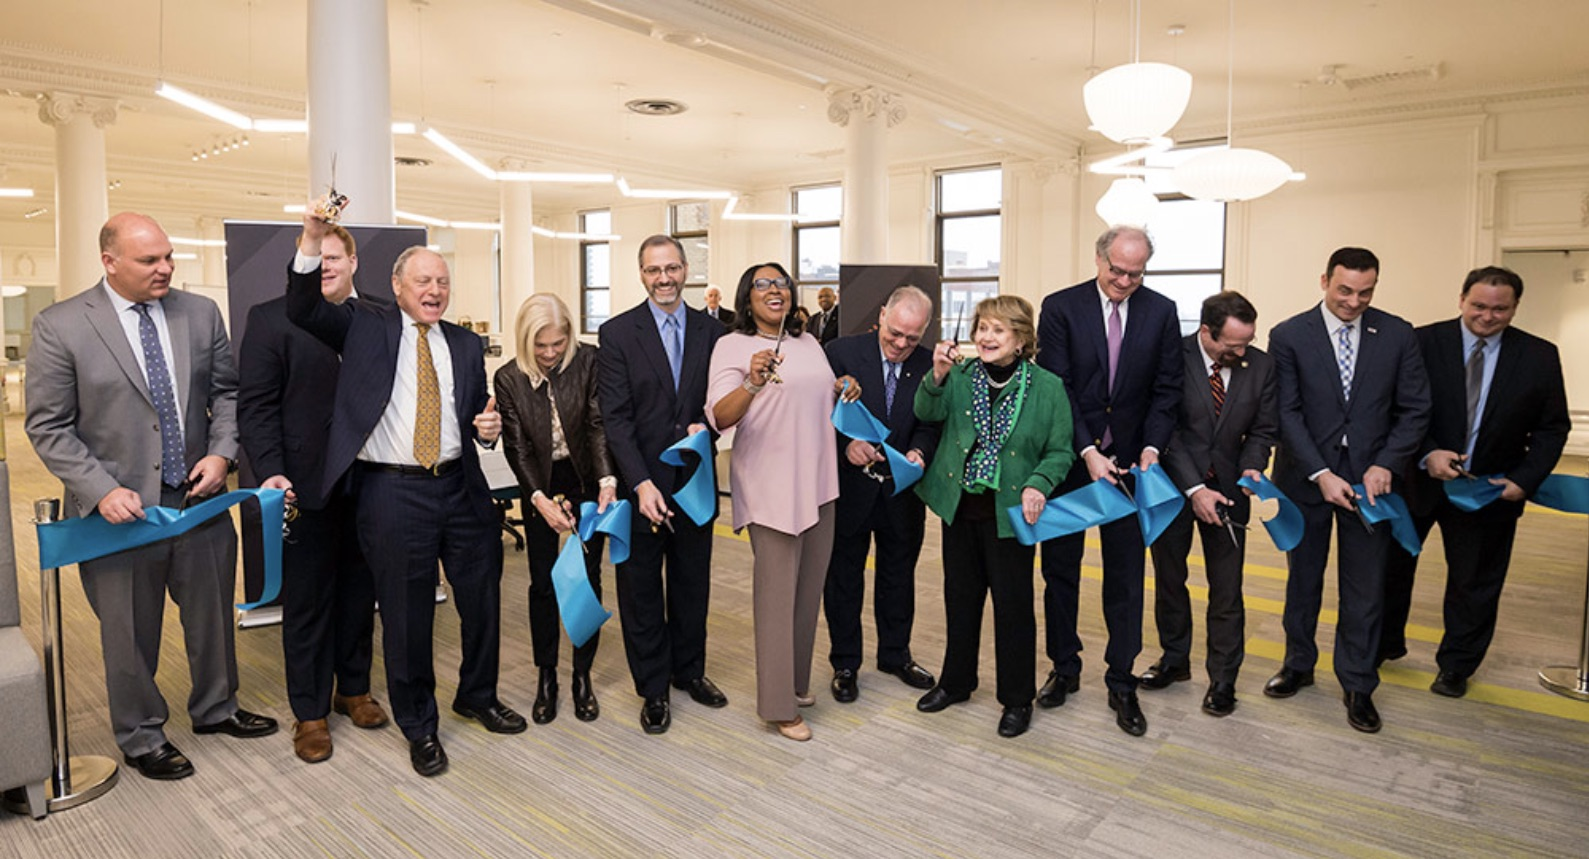 Ribbon-cutting ceremony at NextCorps